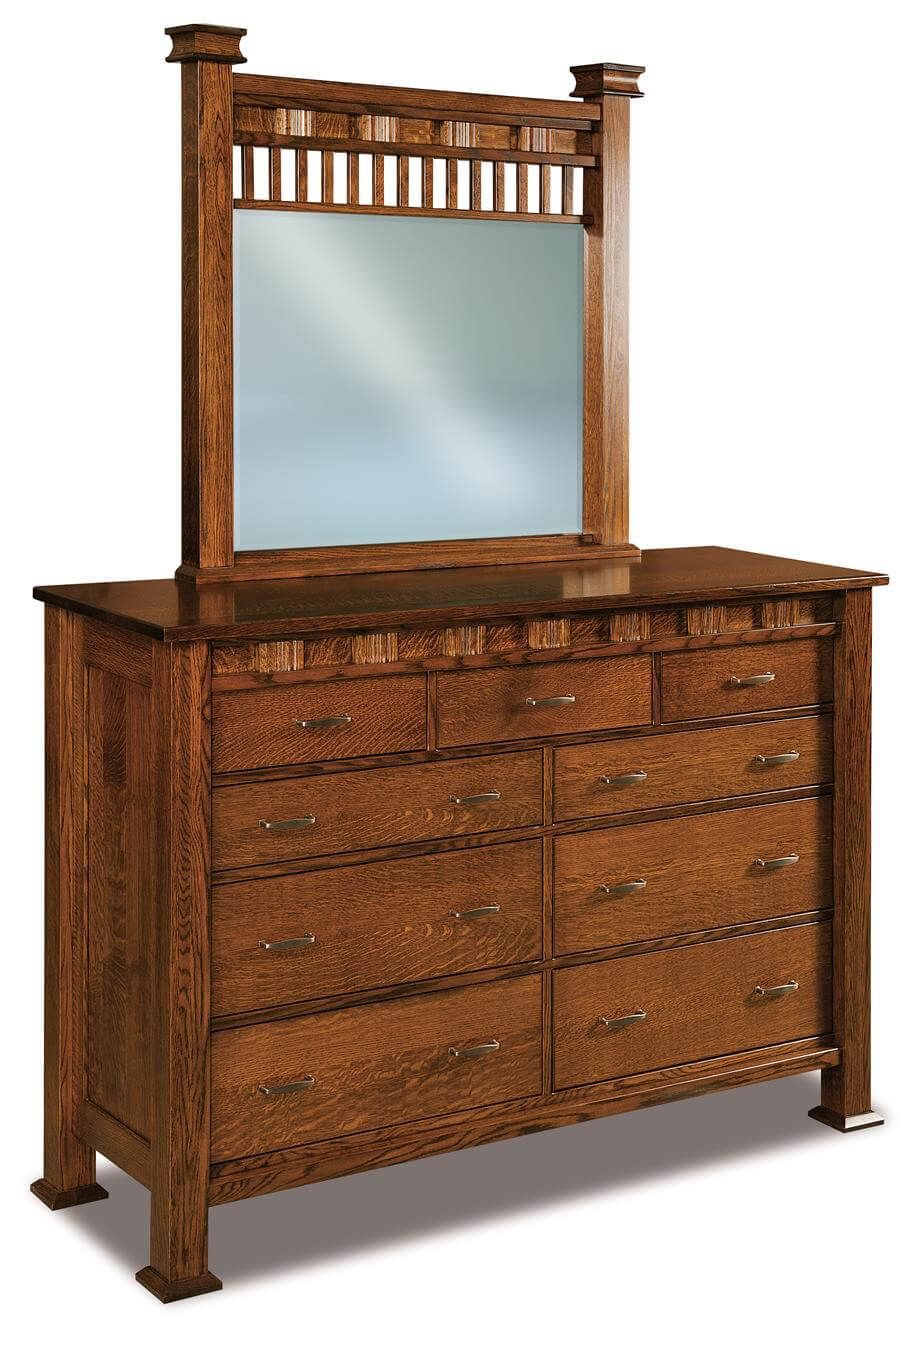 Tuskegee 9-Drawer Dresser